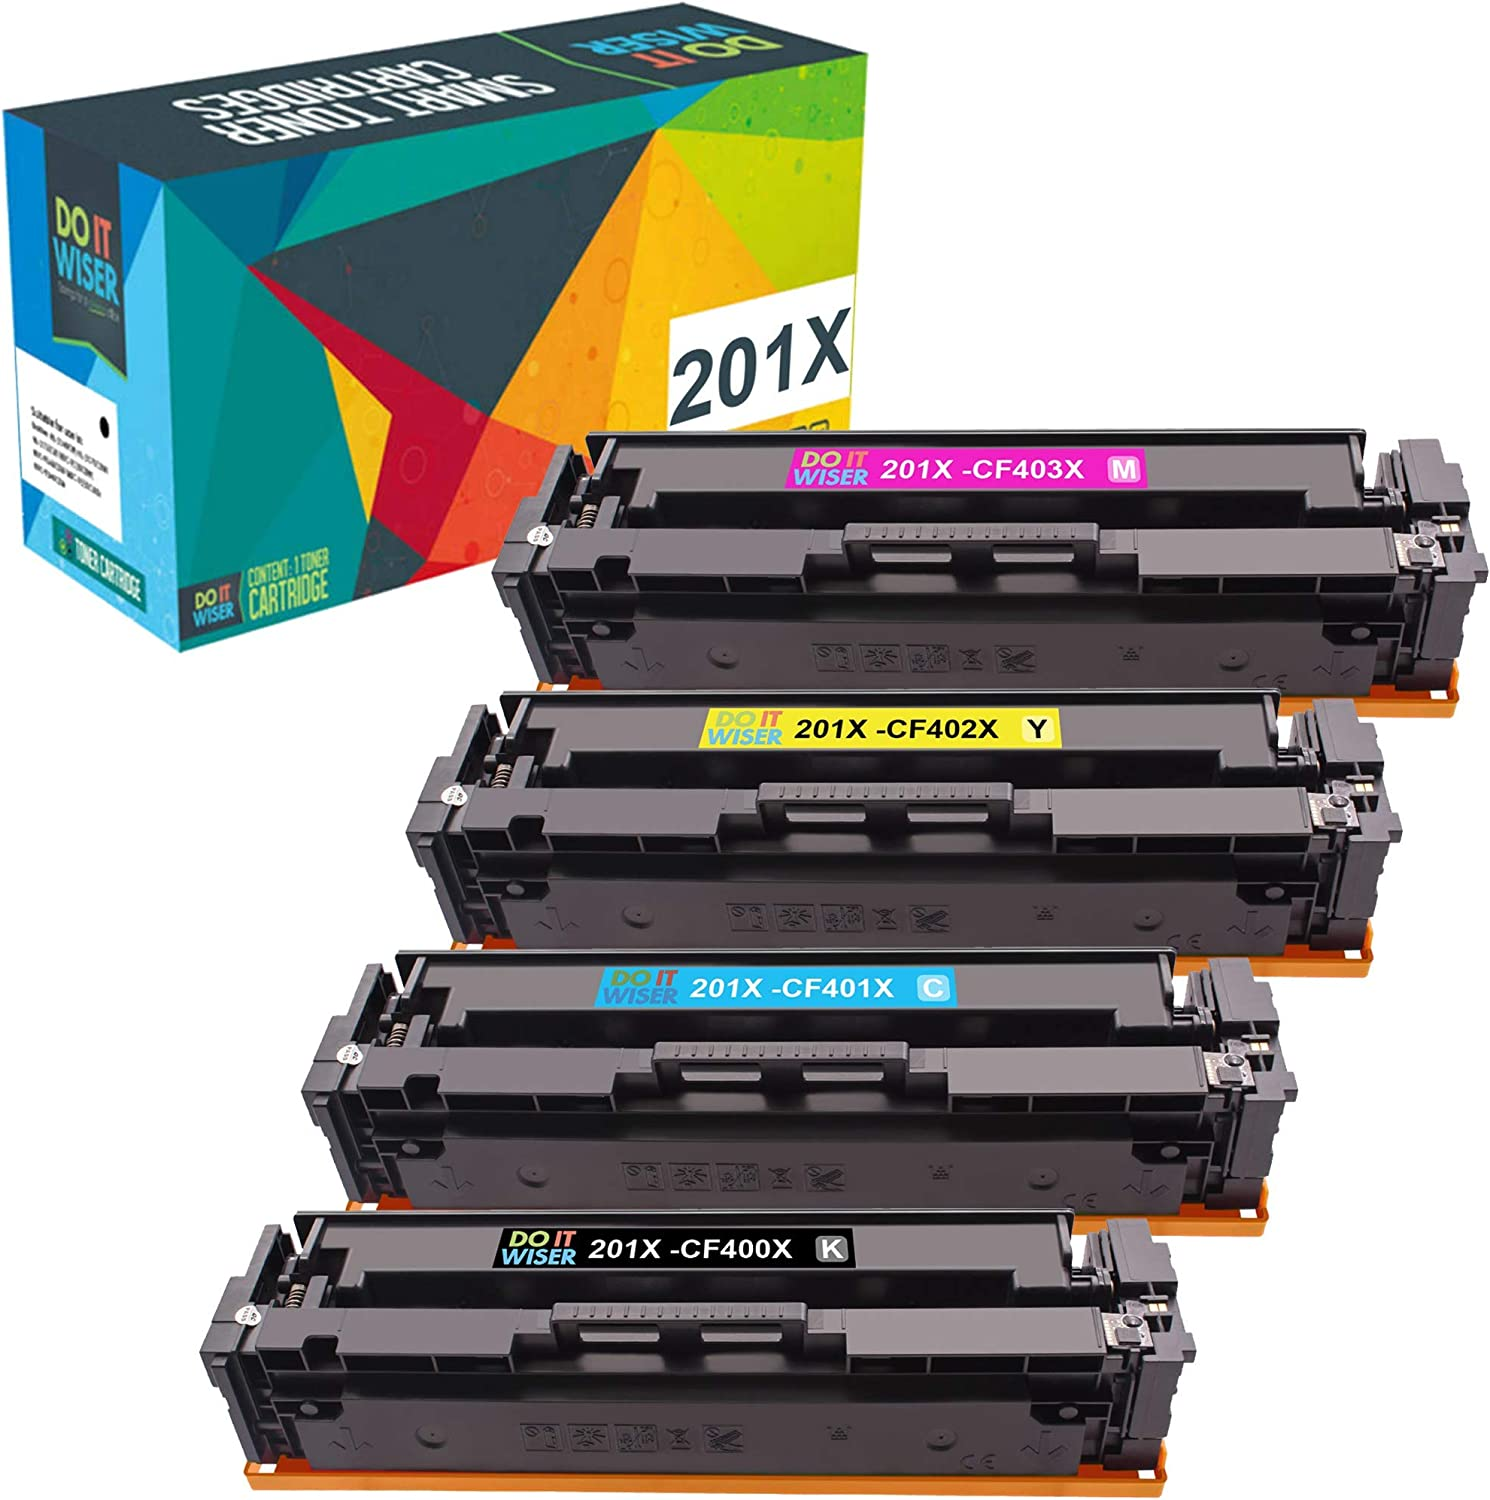 Do it Wiser Compatible Toner Cartridge Replacement for HP 201X 201A CF400X CF401X CF402X CF403X CF400A for Color Laserjet Pro MFP M277dw M252dw M277n M277c6 M252n M277 (Black, Cyan, Magenta, Yellow)